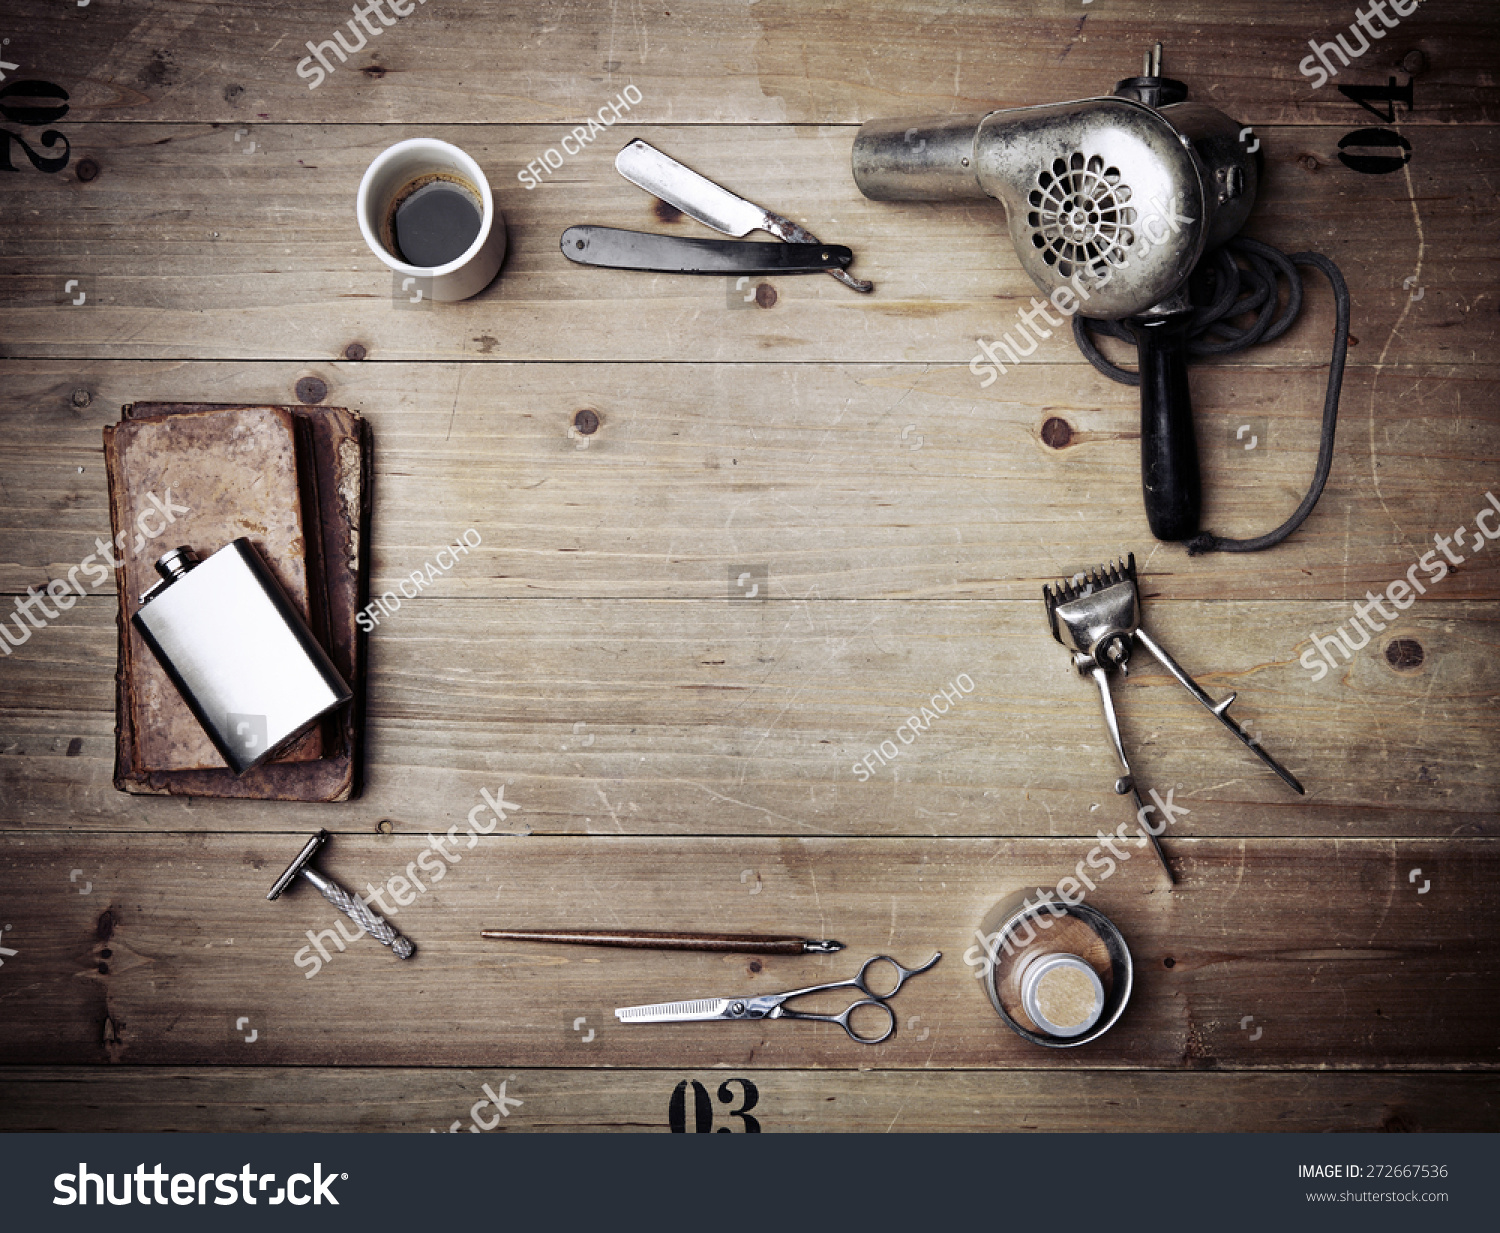 Barber Background : Vintage Barber Shop Equipment On Wood Background With Place For Stock ...